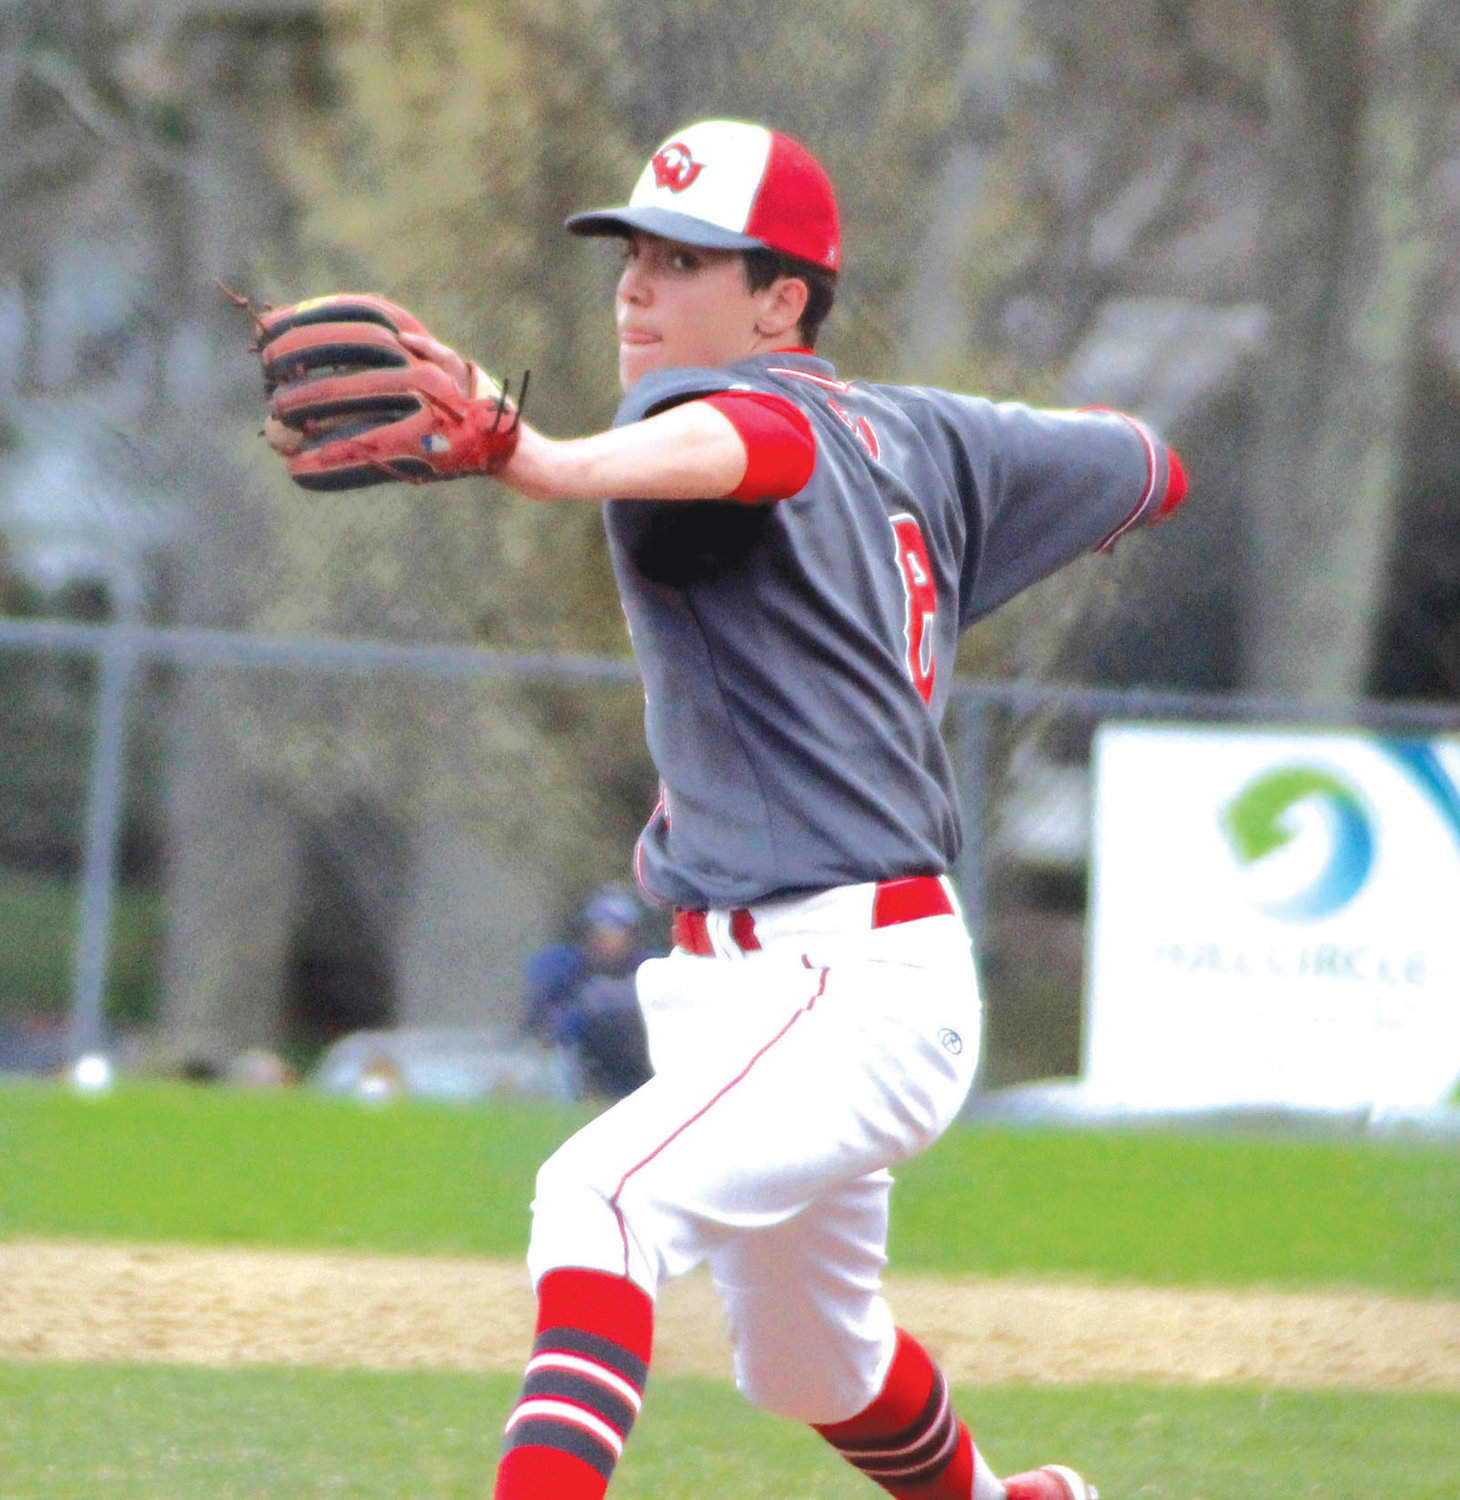 ON THE MOUND: Cranston West pitcher Massimo Feroce gets set to deliver against Johnston last week. The Falcons topped the Panthers in a 4-1 win. Feroce pitched a complete game.